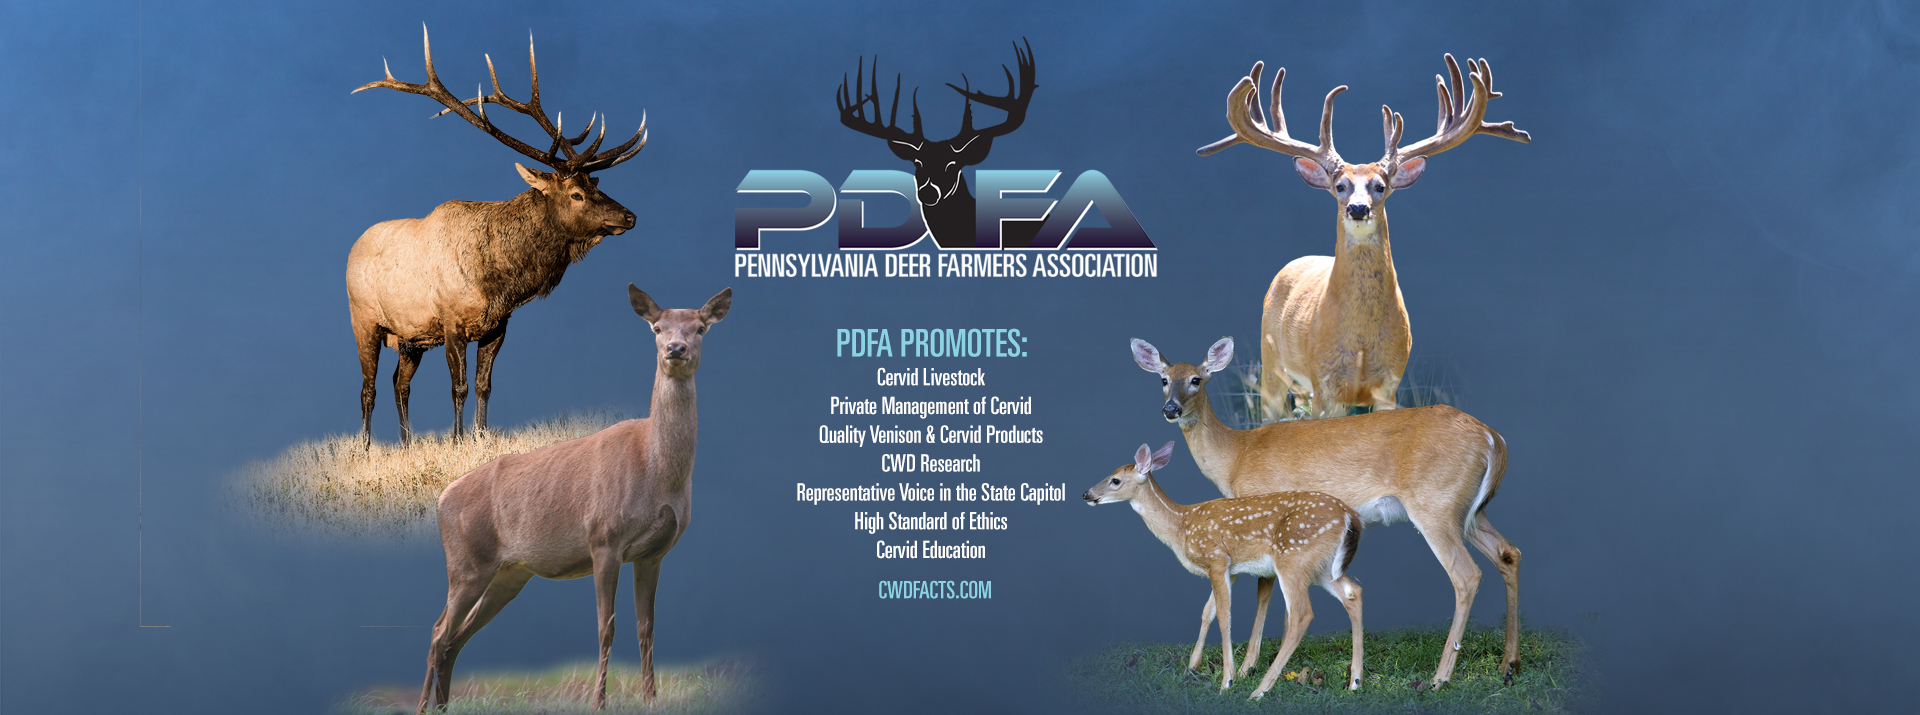 The Pennsylvania Deer Farmers Association | Preserve